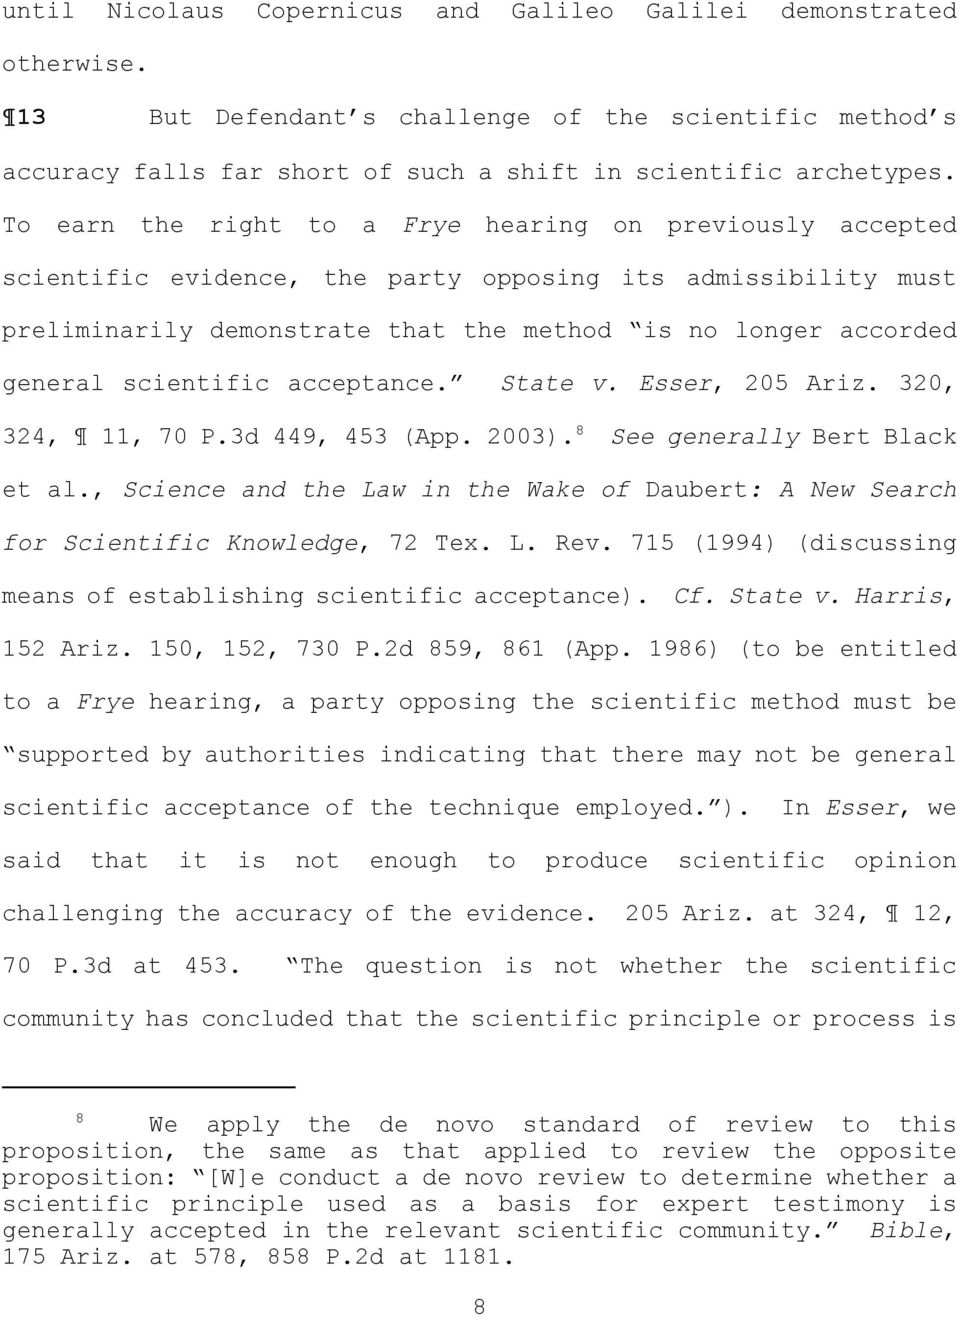 scientific acceptance. State v. Esser, 205 Ariz. 320, 324, 11, 70 P.3d 449, 453 (App. 2003. 8 See generally Bert Black et al.